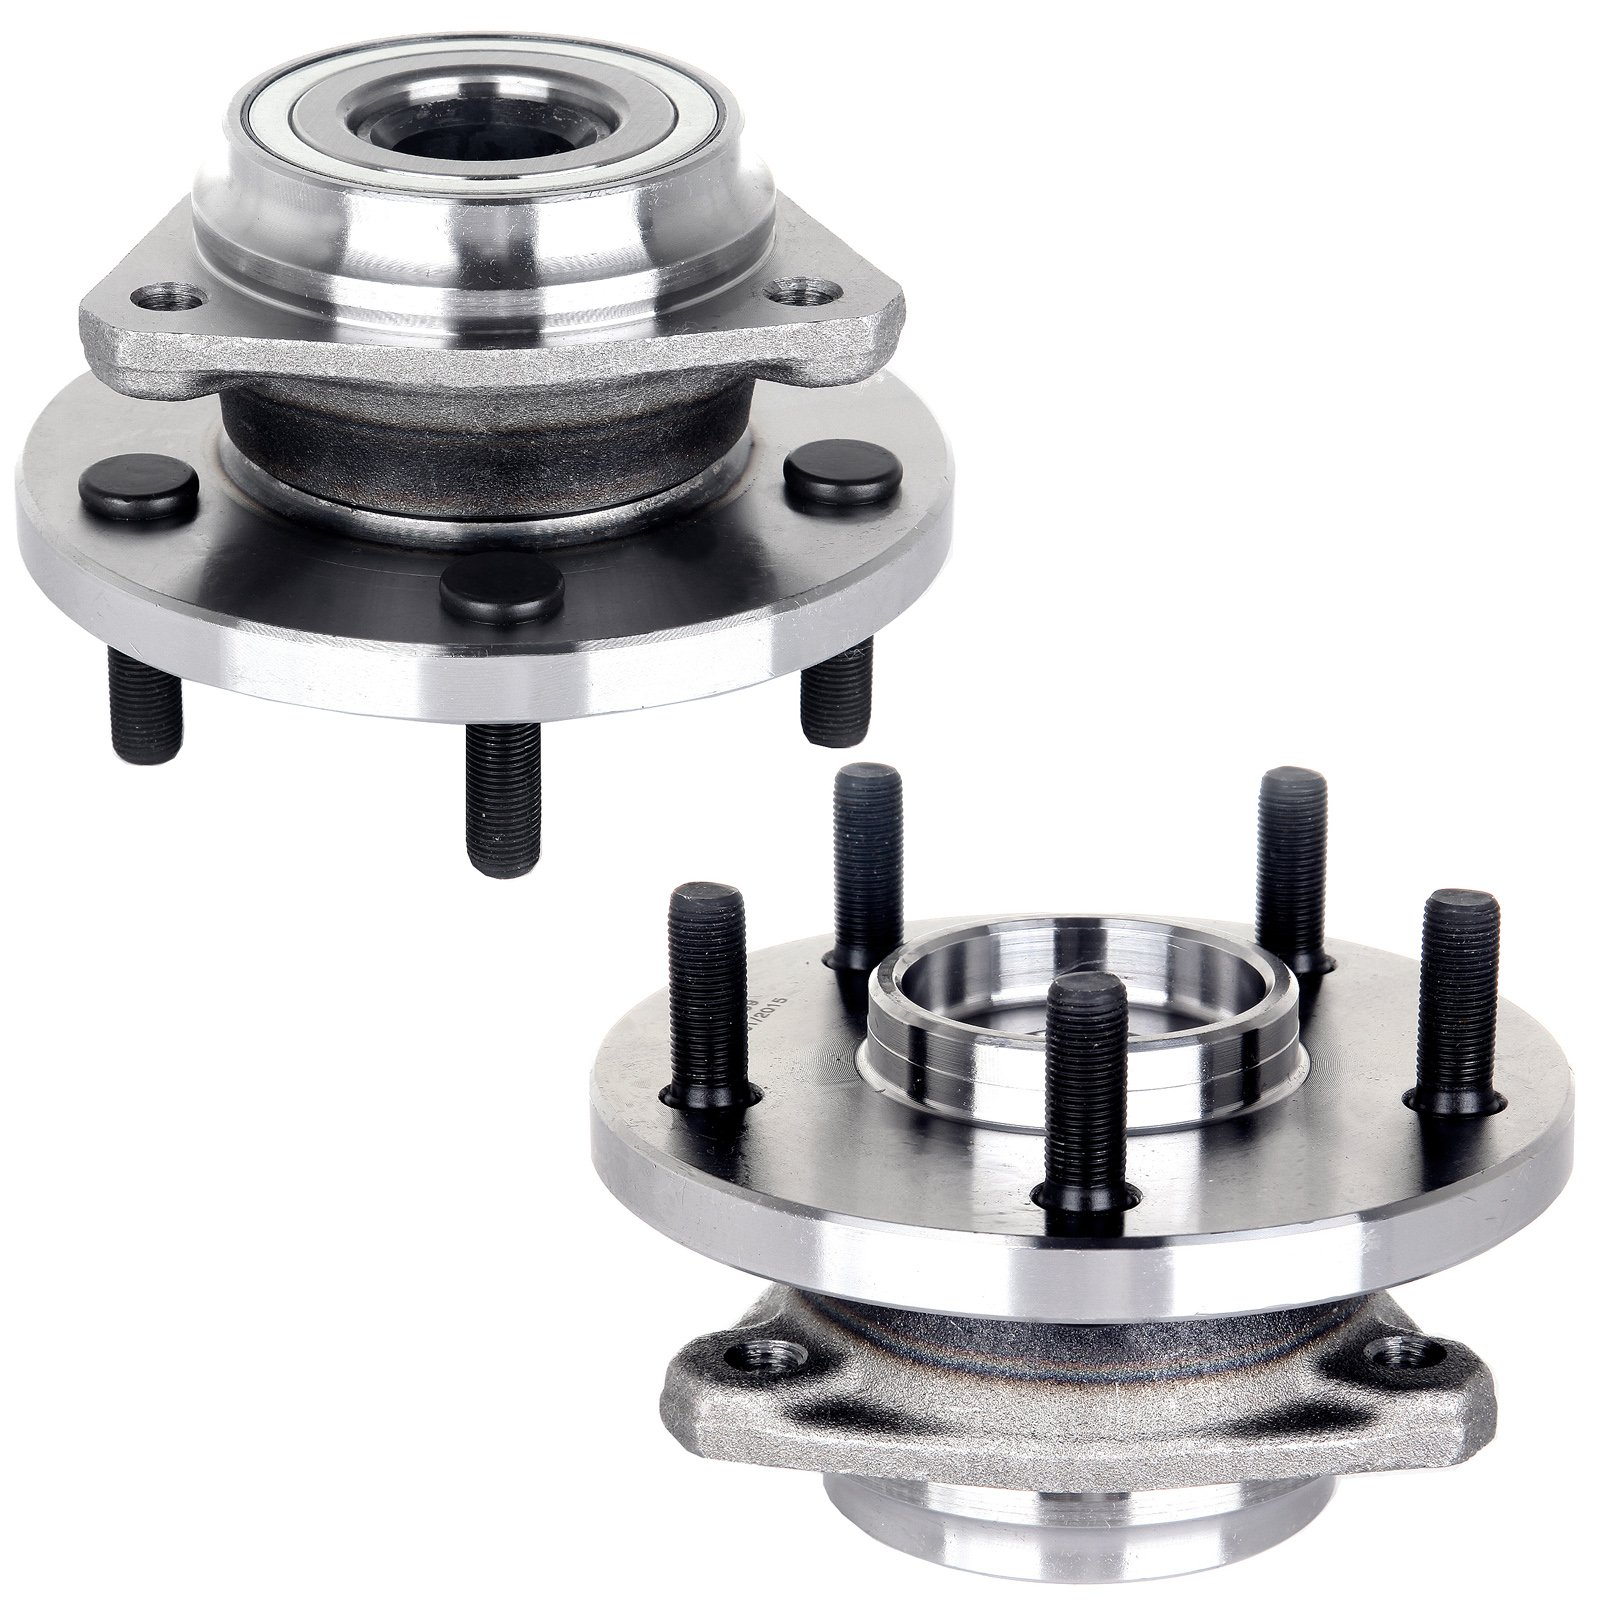 ECCPP 513159 Front Wheel Hub & Bearing Assembly for 99-04 Jeep Grand Cherokee (513159 x2)